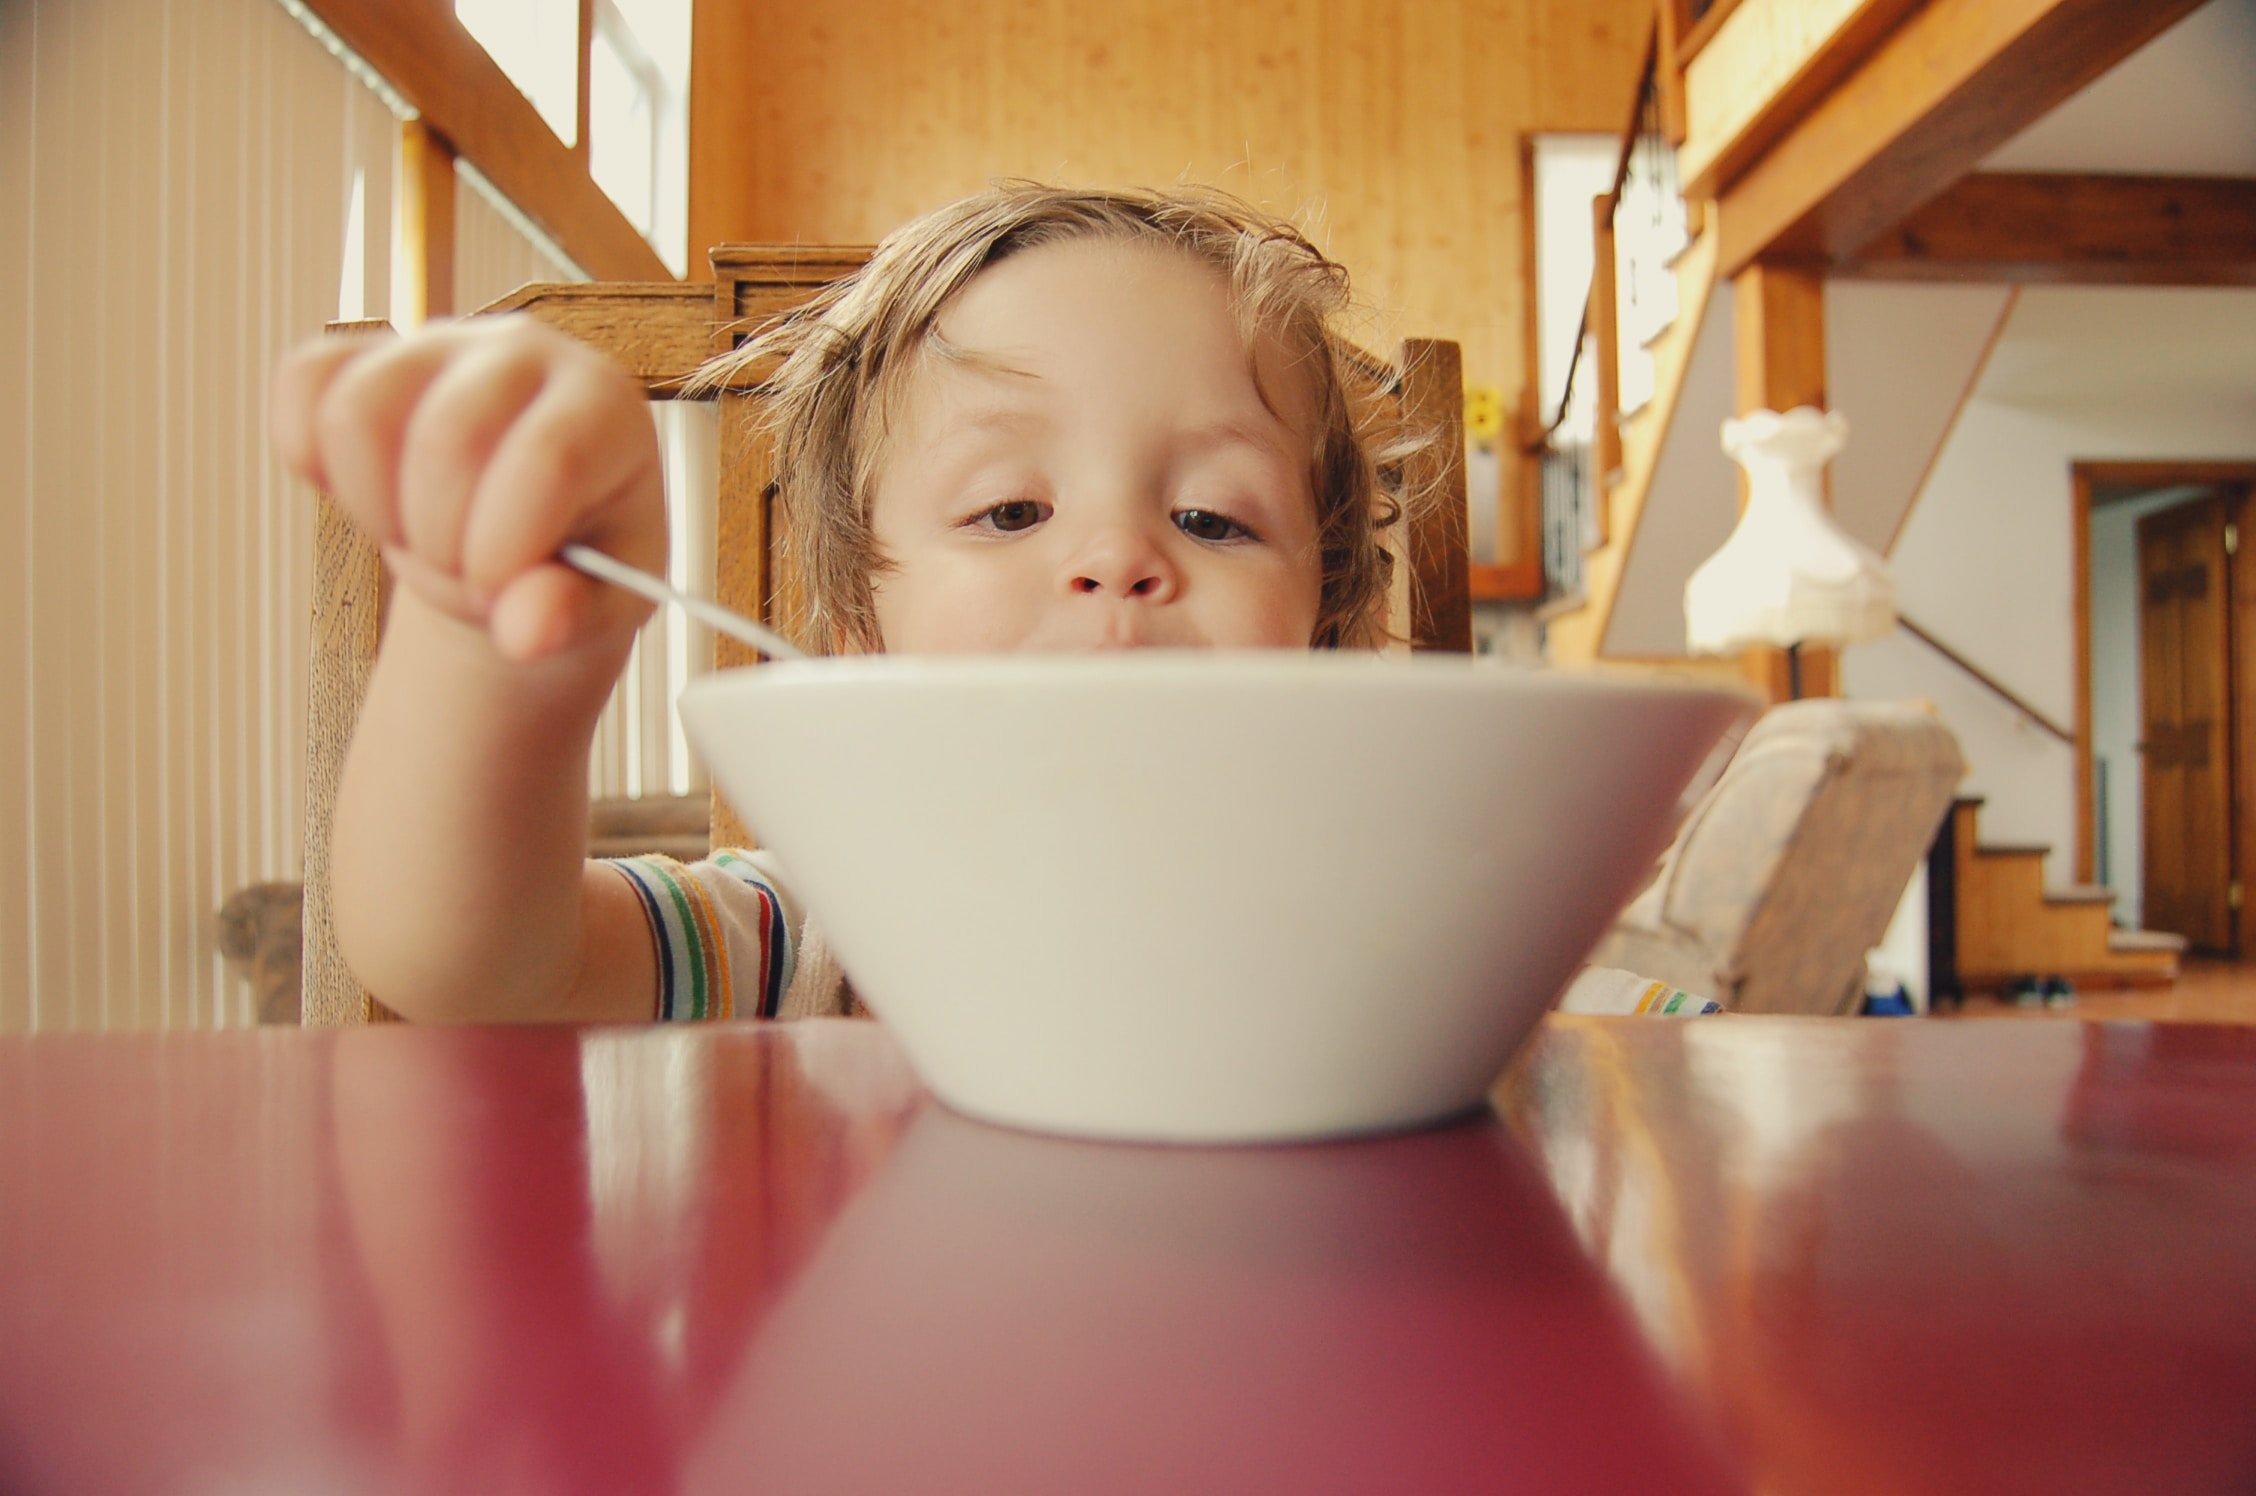 A child eating | Source: Unsplash.com